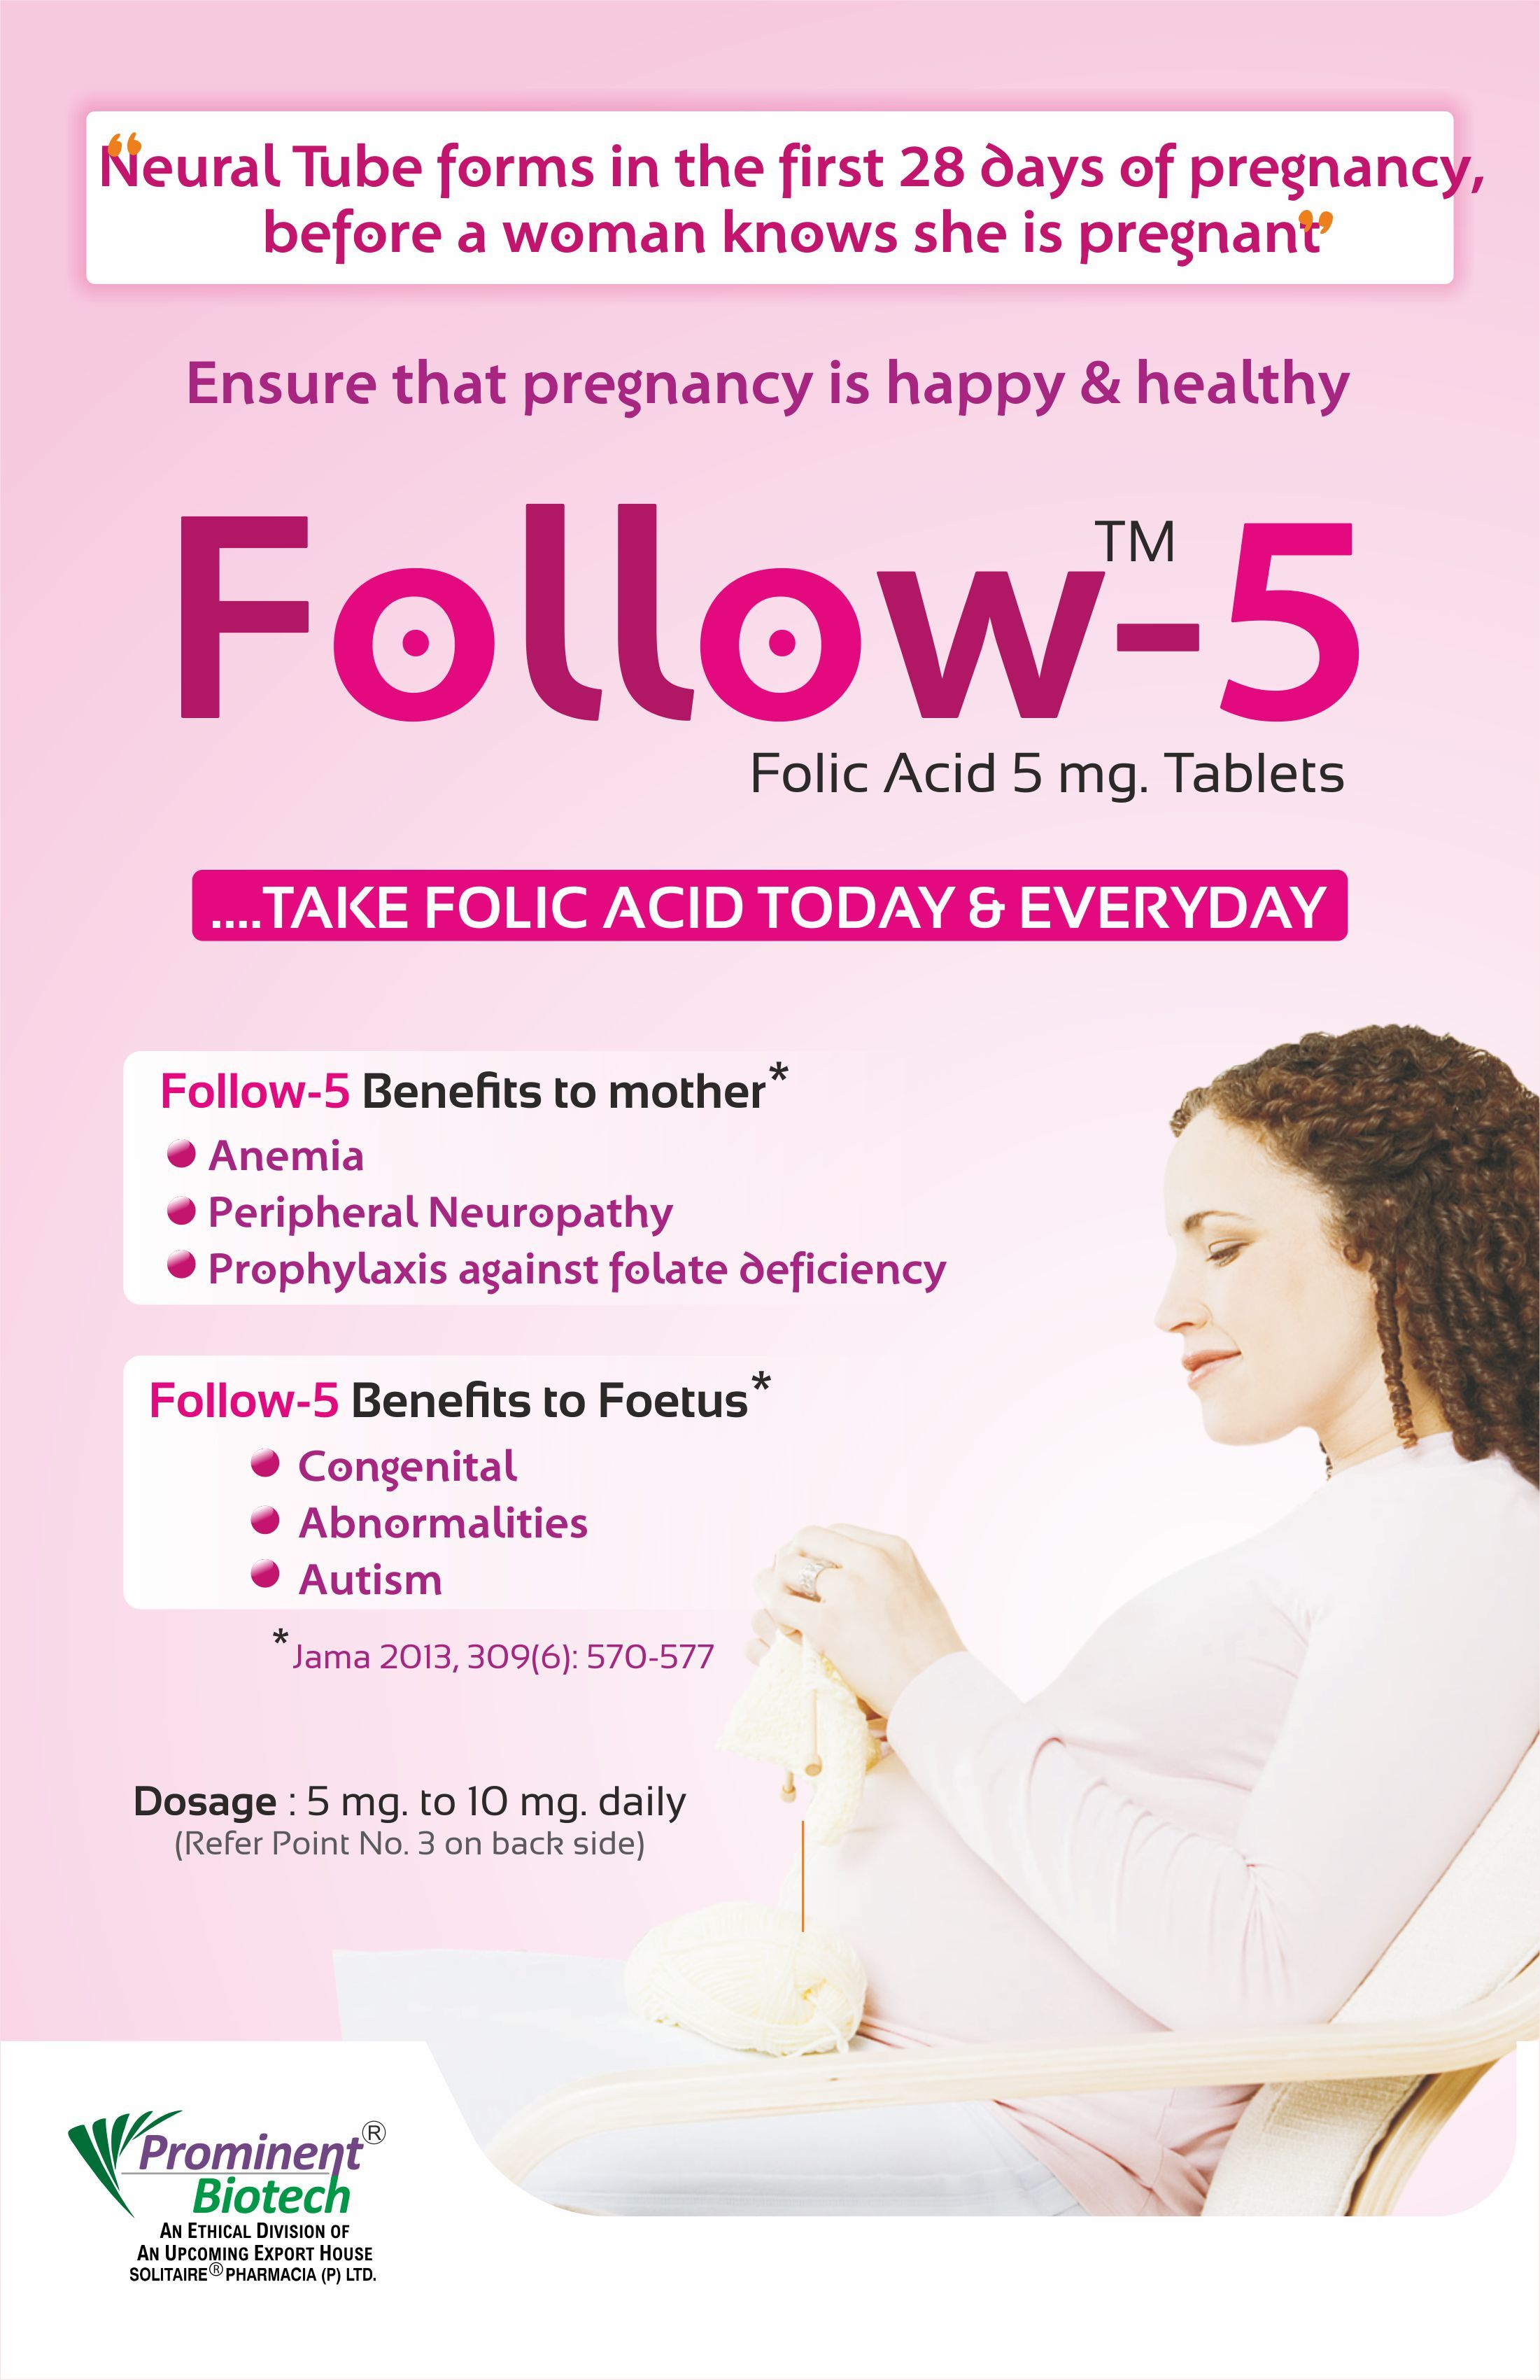 Folic Acid 5 Mg Tablets